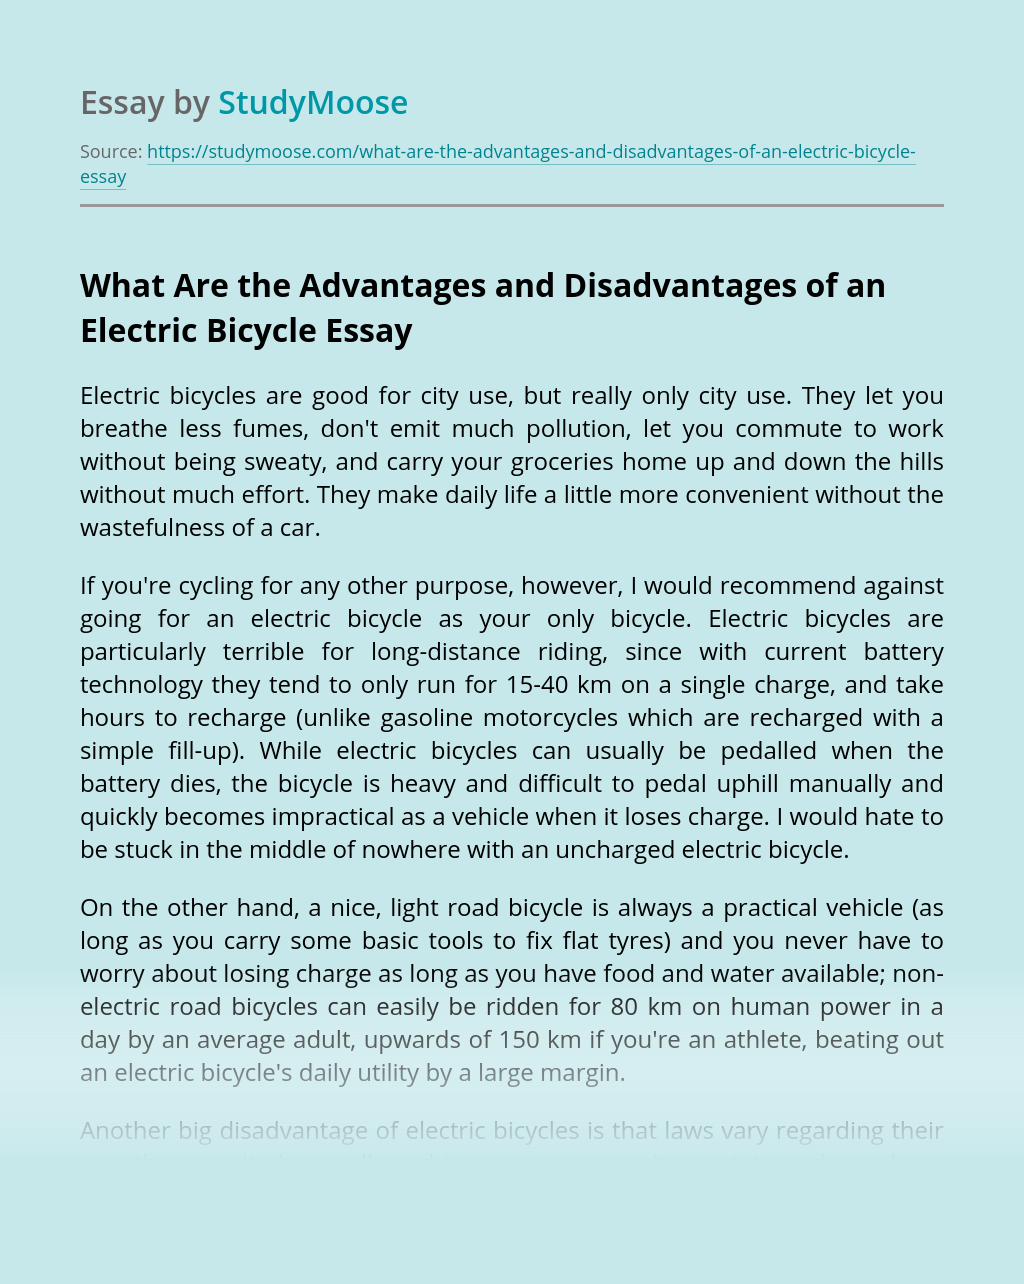 What Are the Advantages and Disadvantages of an Electric Bicycle